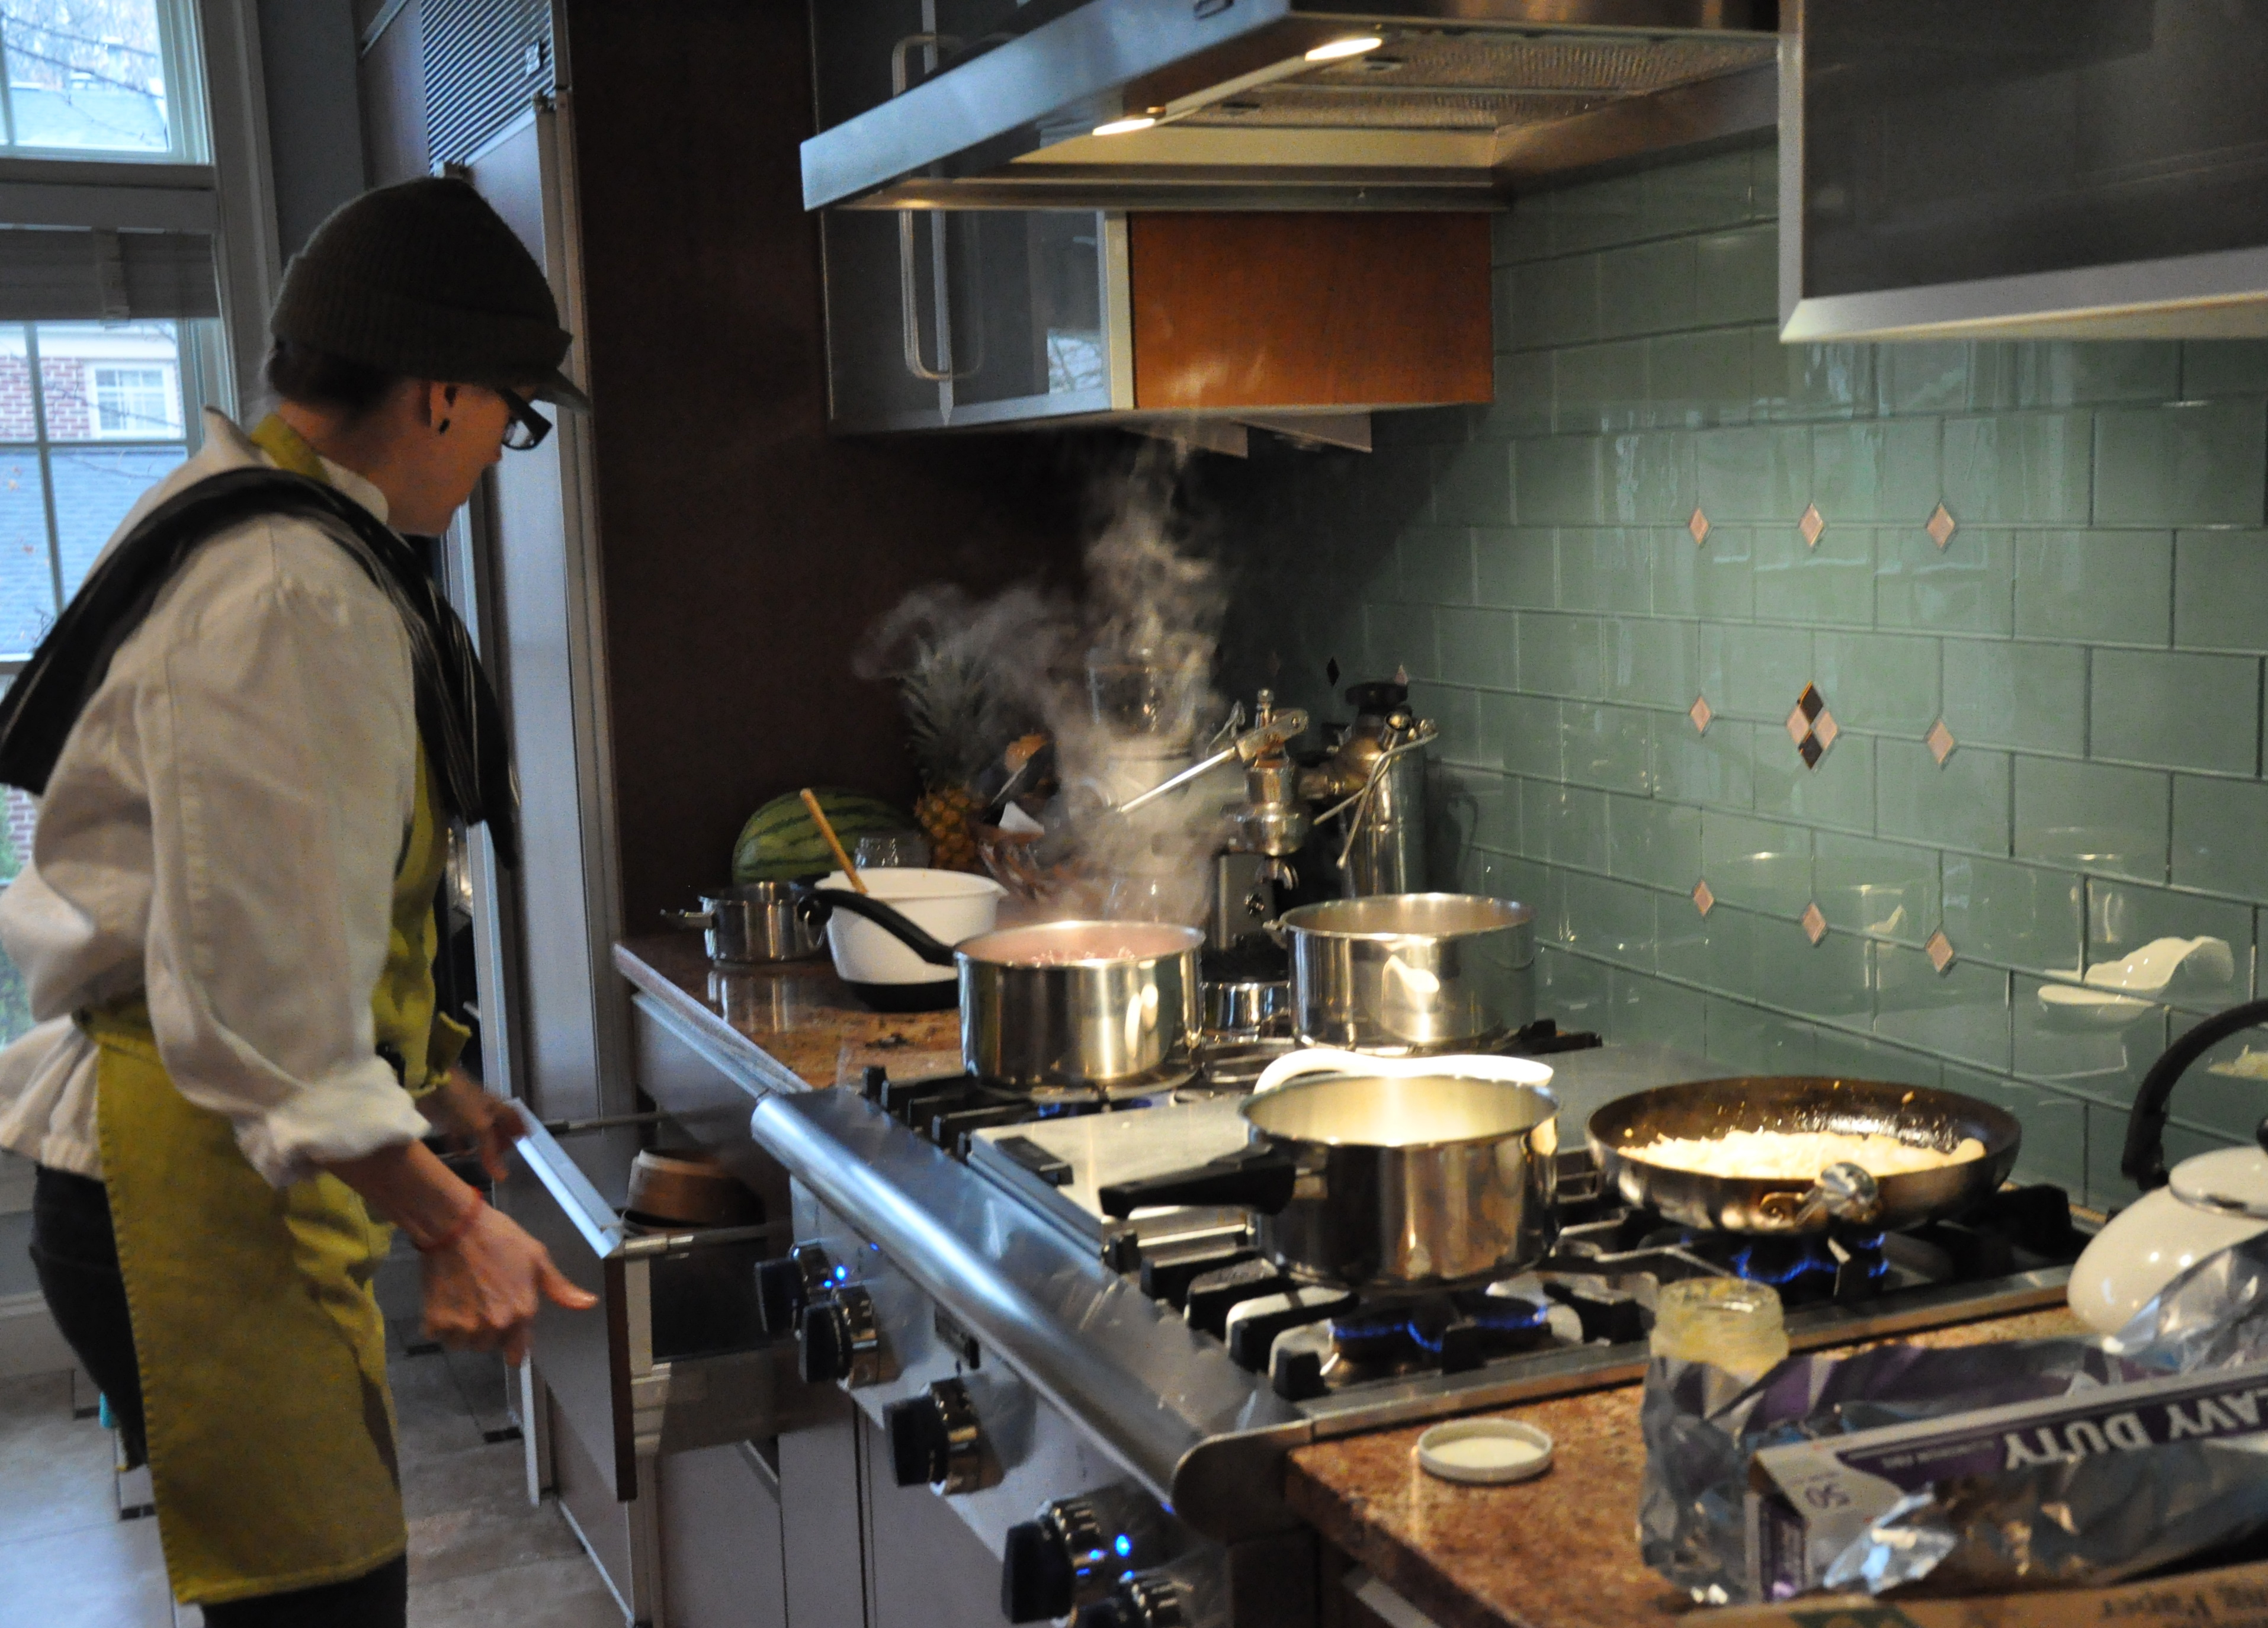 Local chefs are getting personal, spreading passion